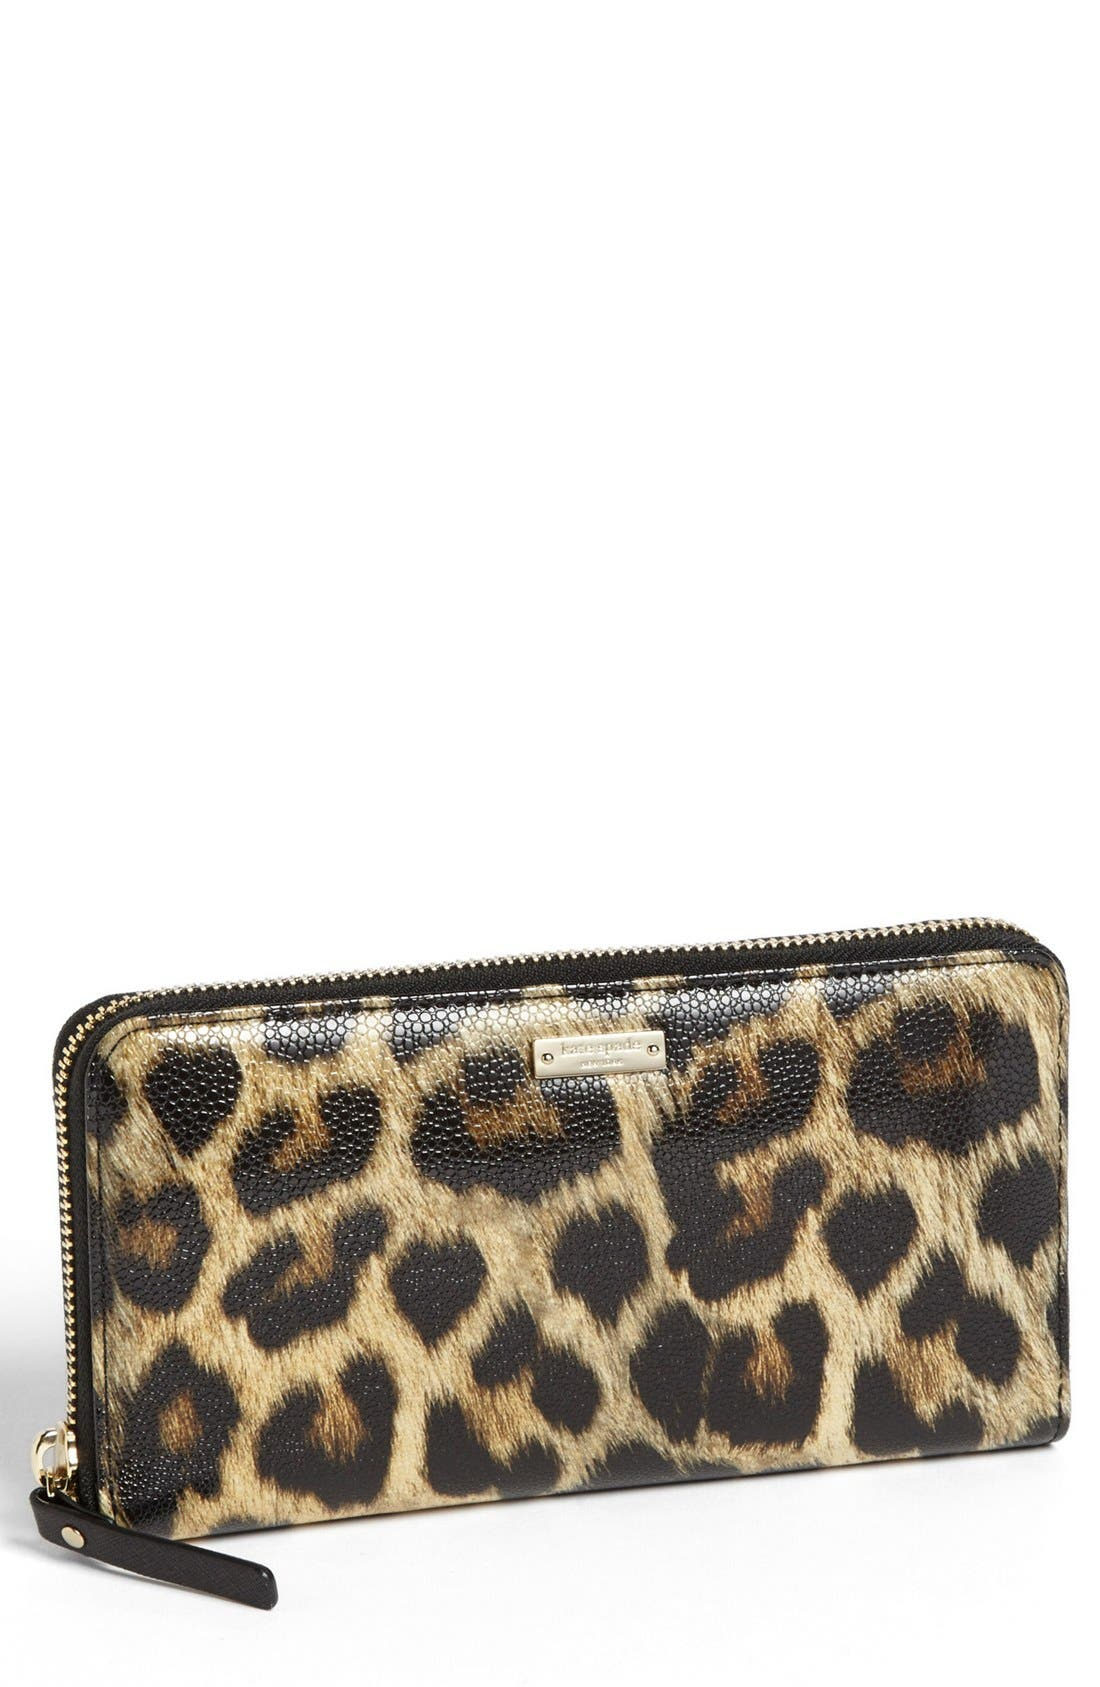 Main Image - kate spade new york 'cedar street animal - lacey' wallet